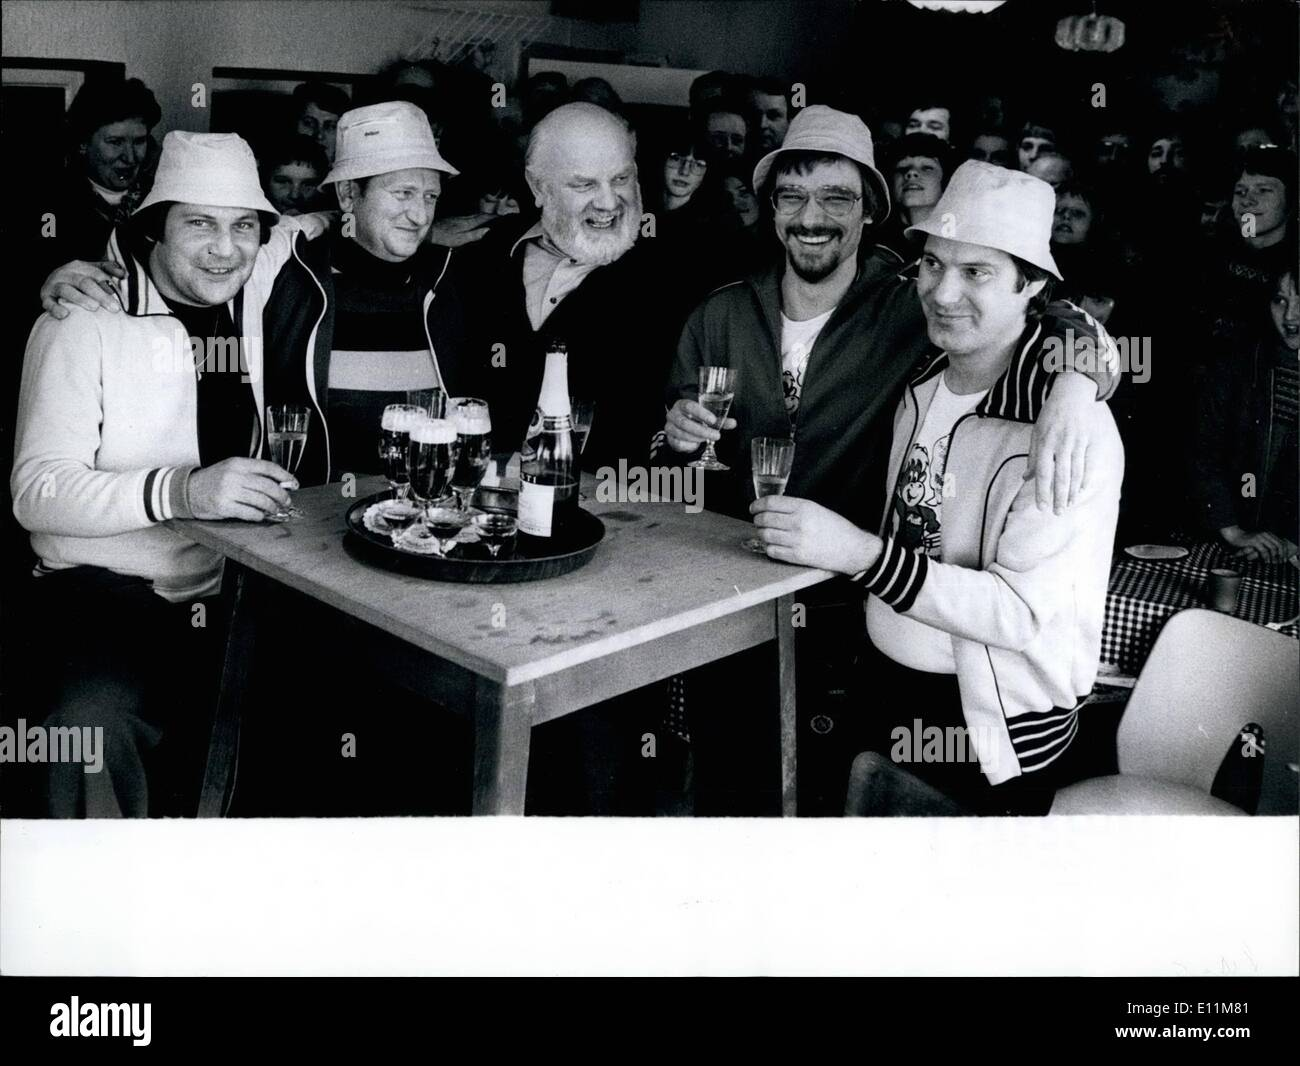 Feb. 02, 1979 - Exactly at 2.04 p.m. February 18th 1979 DIETER BRNEGGEMANN (29), HANS PLEYE (45), DIETER JANTZEIT (27) and NORBERT BRIJEGGMANN (32), from left to right, after 144 hours playing per - manence -skat, laid down the cards and rank toast on their new world-record. In the middle, without hat, the man whd had controlled the world -record - trial, mayor SIDPELVEYER. The four citizens of Georgsmarienhuette near Osnabrueck/West -Germany intend to give the, at the trial earned money to the ''Action Problem Child'' which helps ill children - Stock Image